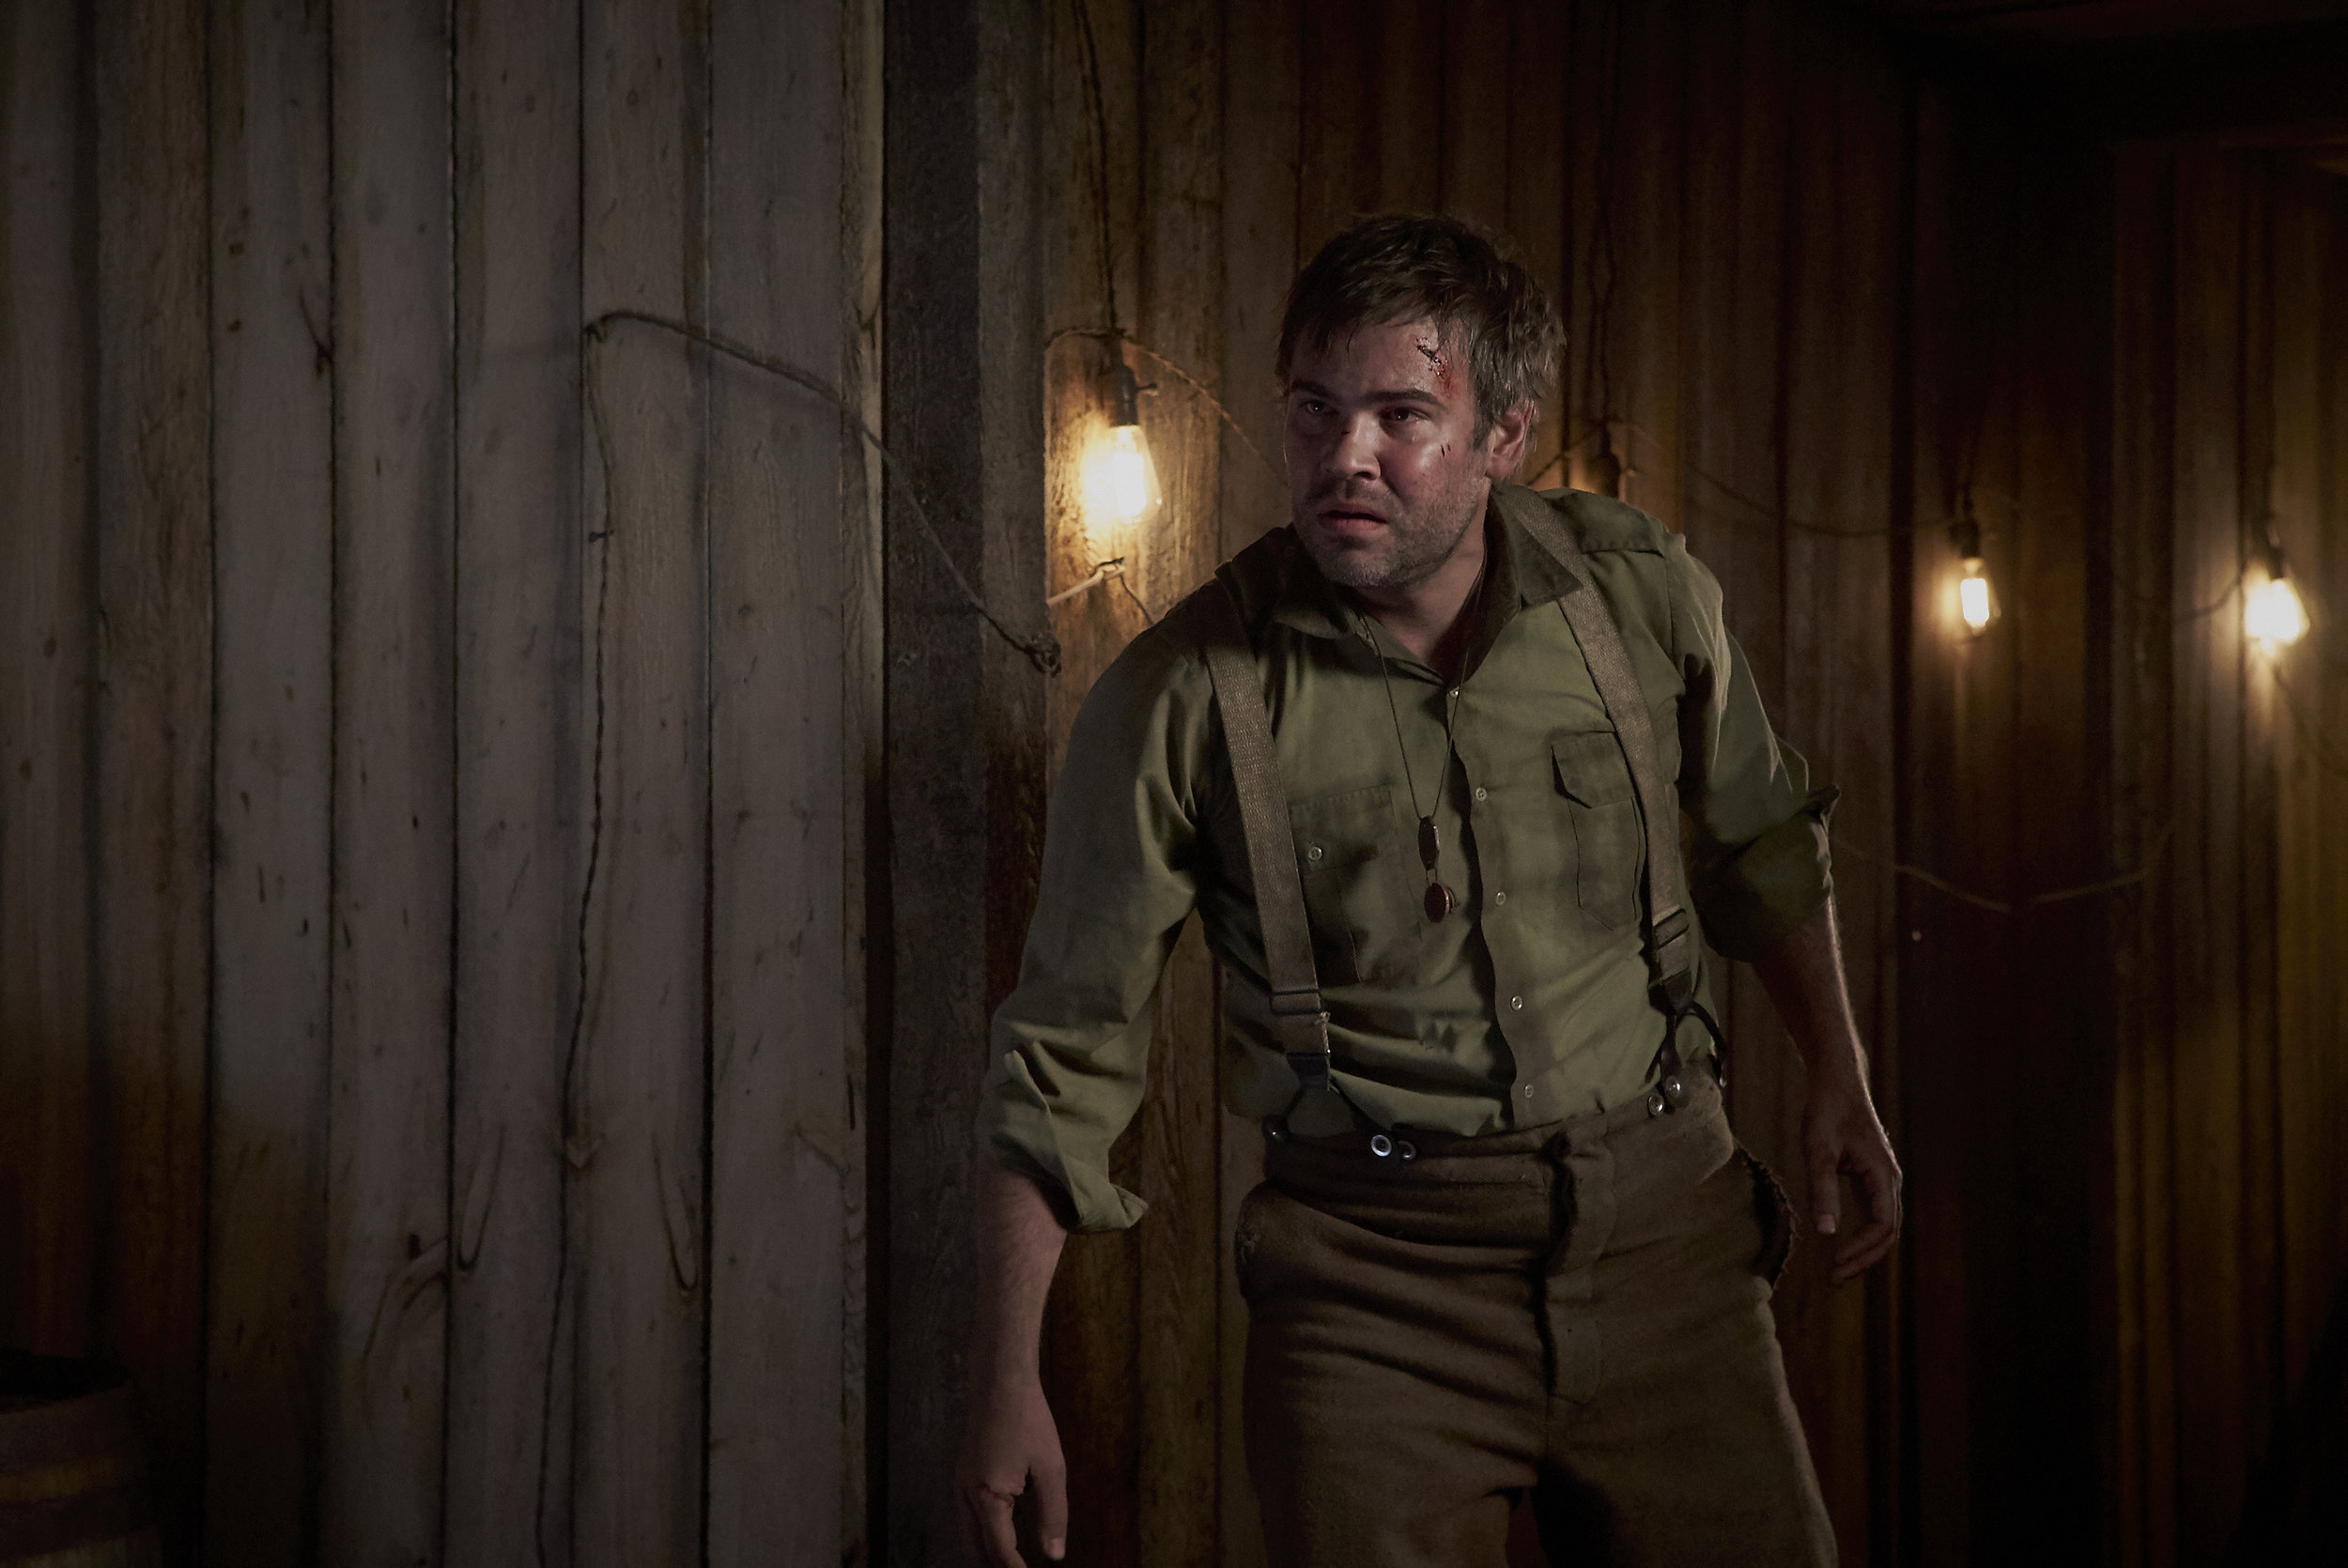 Rossif Sutherland has a bad feeling about that German underground bunker in Trench 11